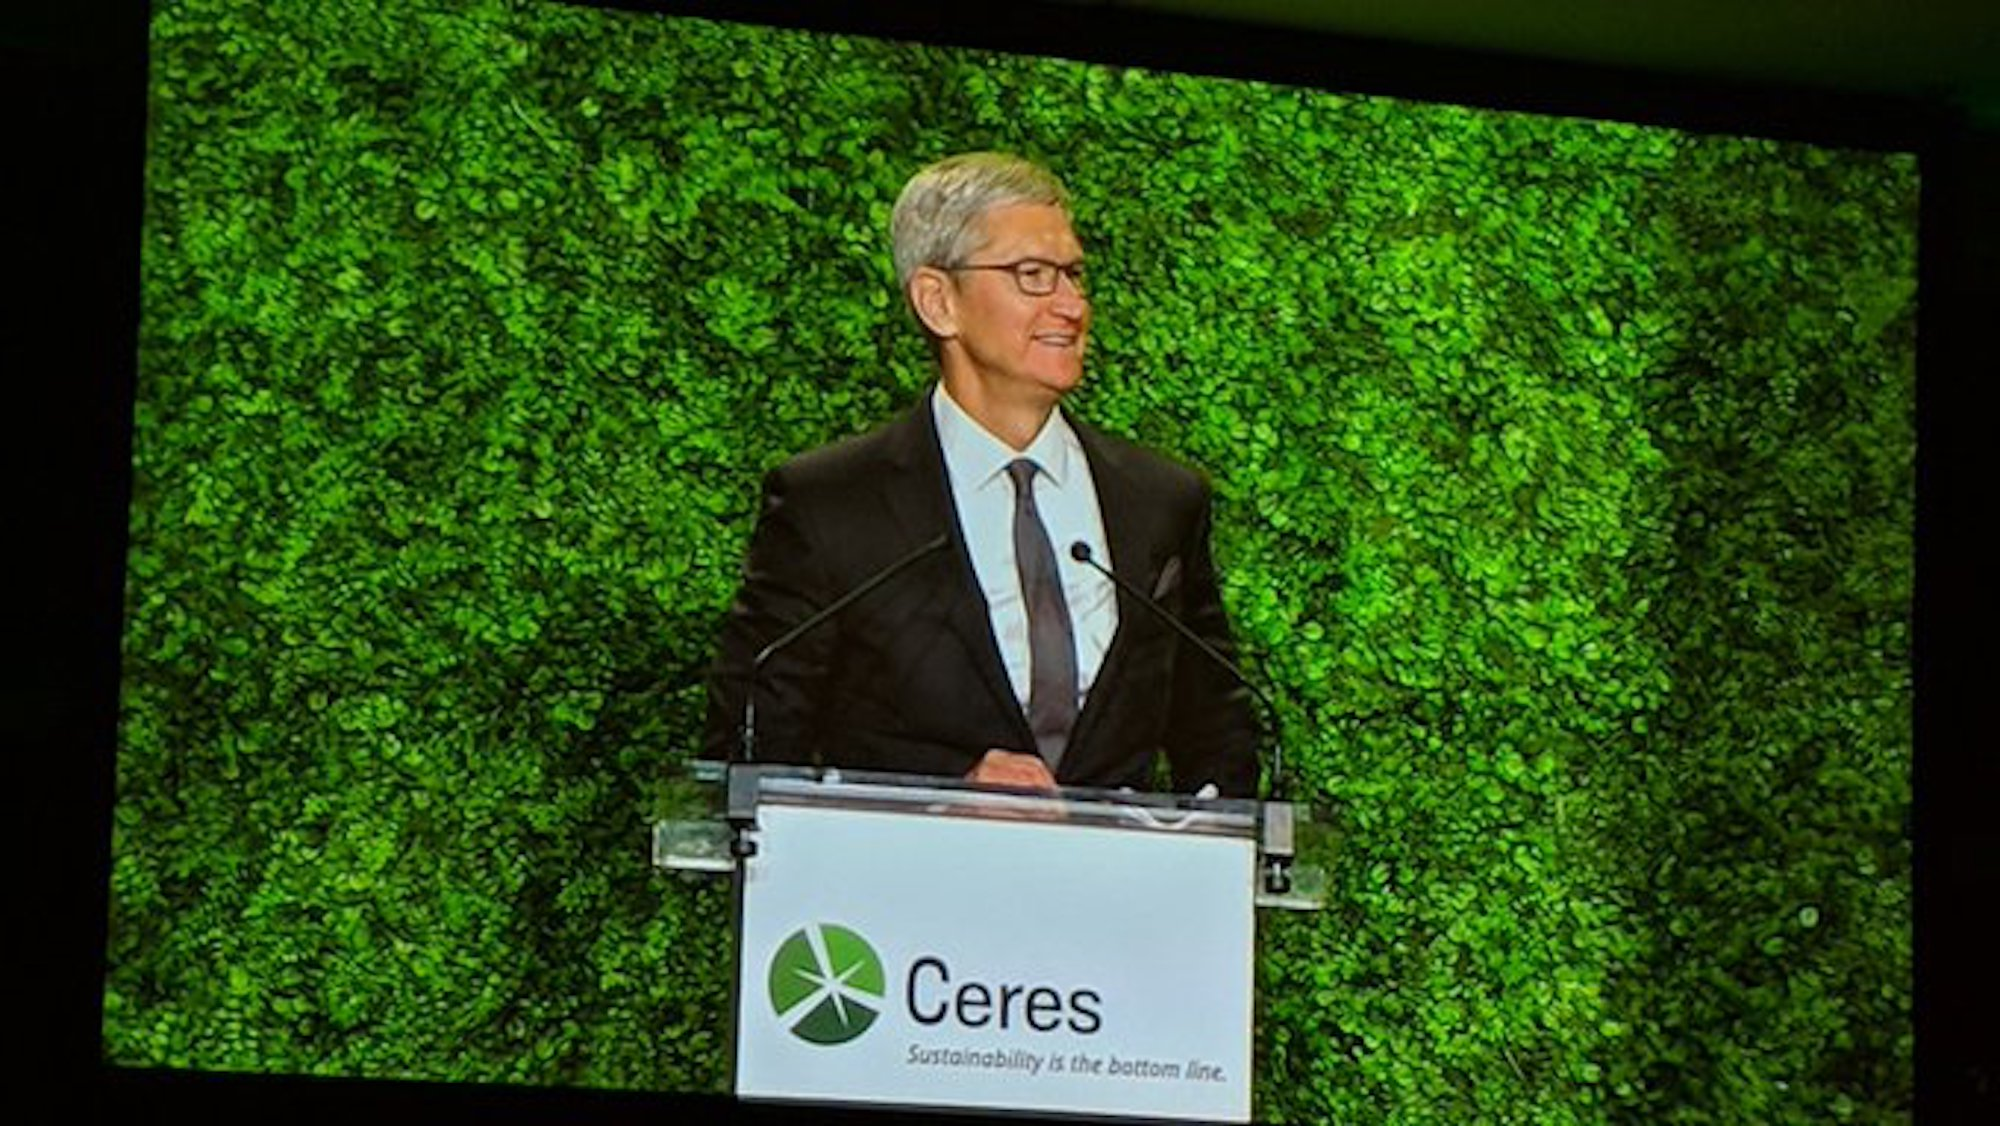 photo of Tim Cook delivers keynote address at Ceres sustainability gala in New York City image